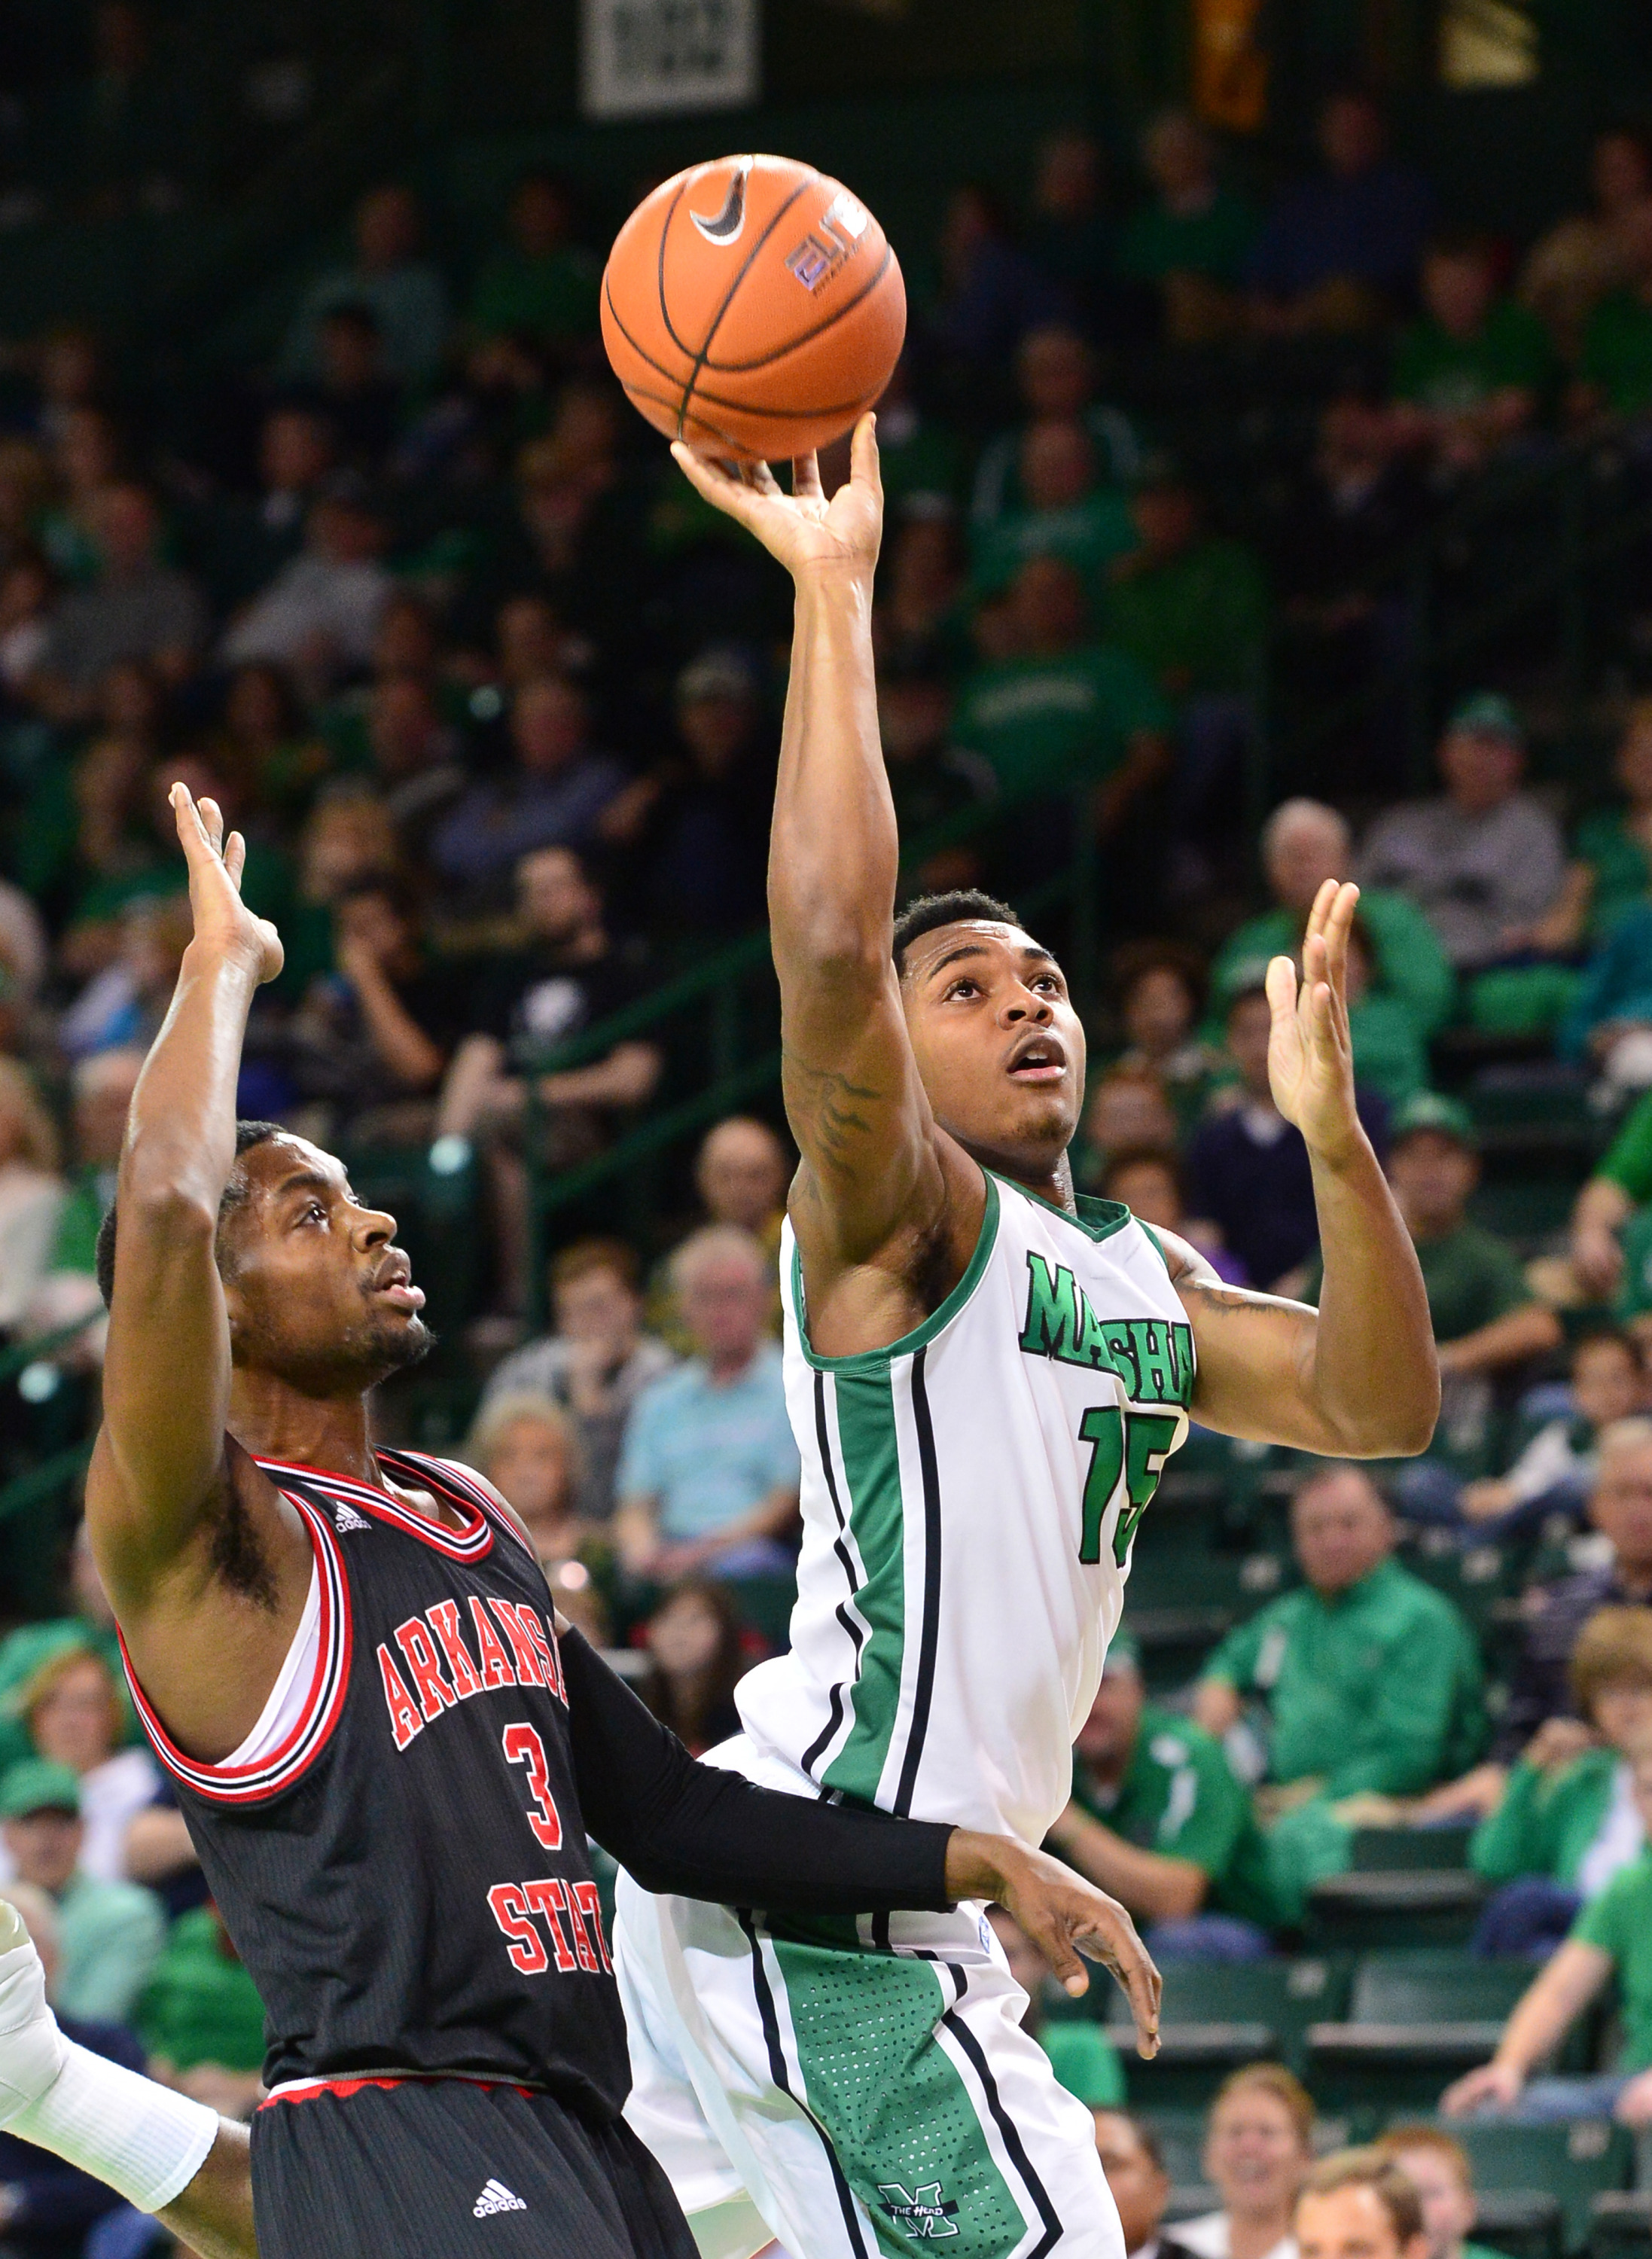 DeVince Boykins opened up the Marshall scoring at UTEP with a three-point bucket